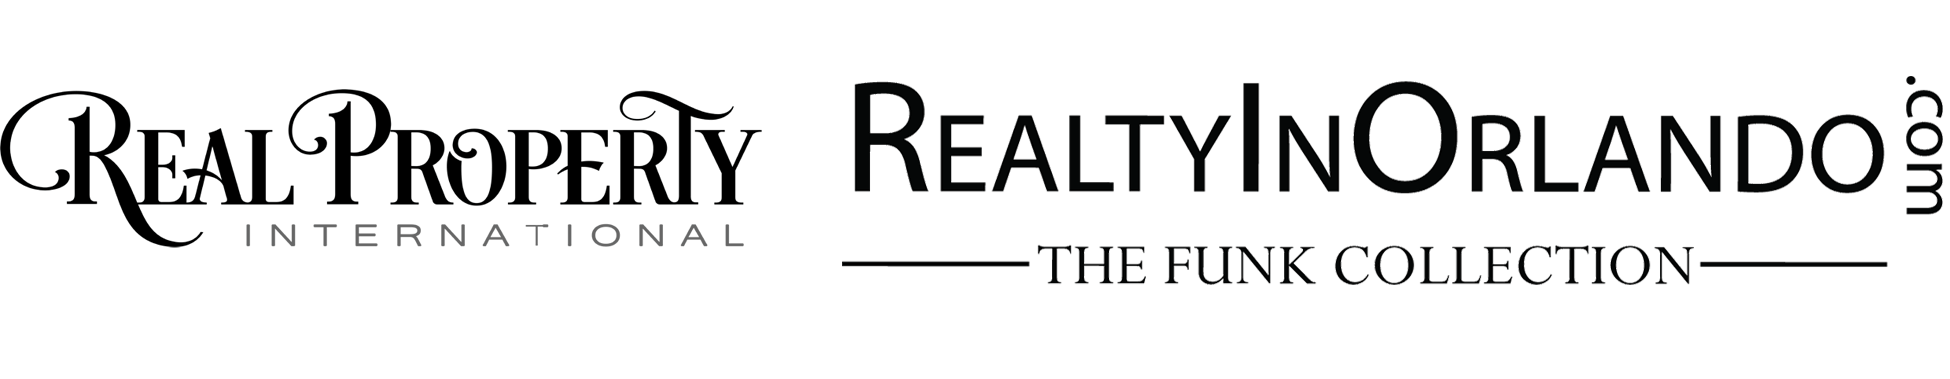 The Funk Collection | Real Property International logo